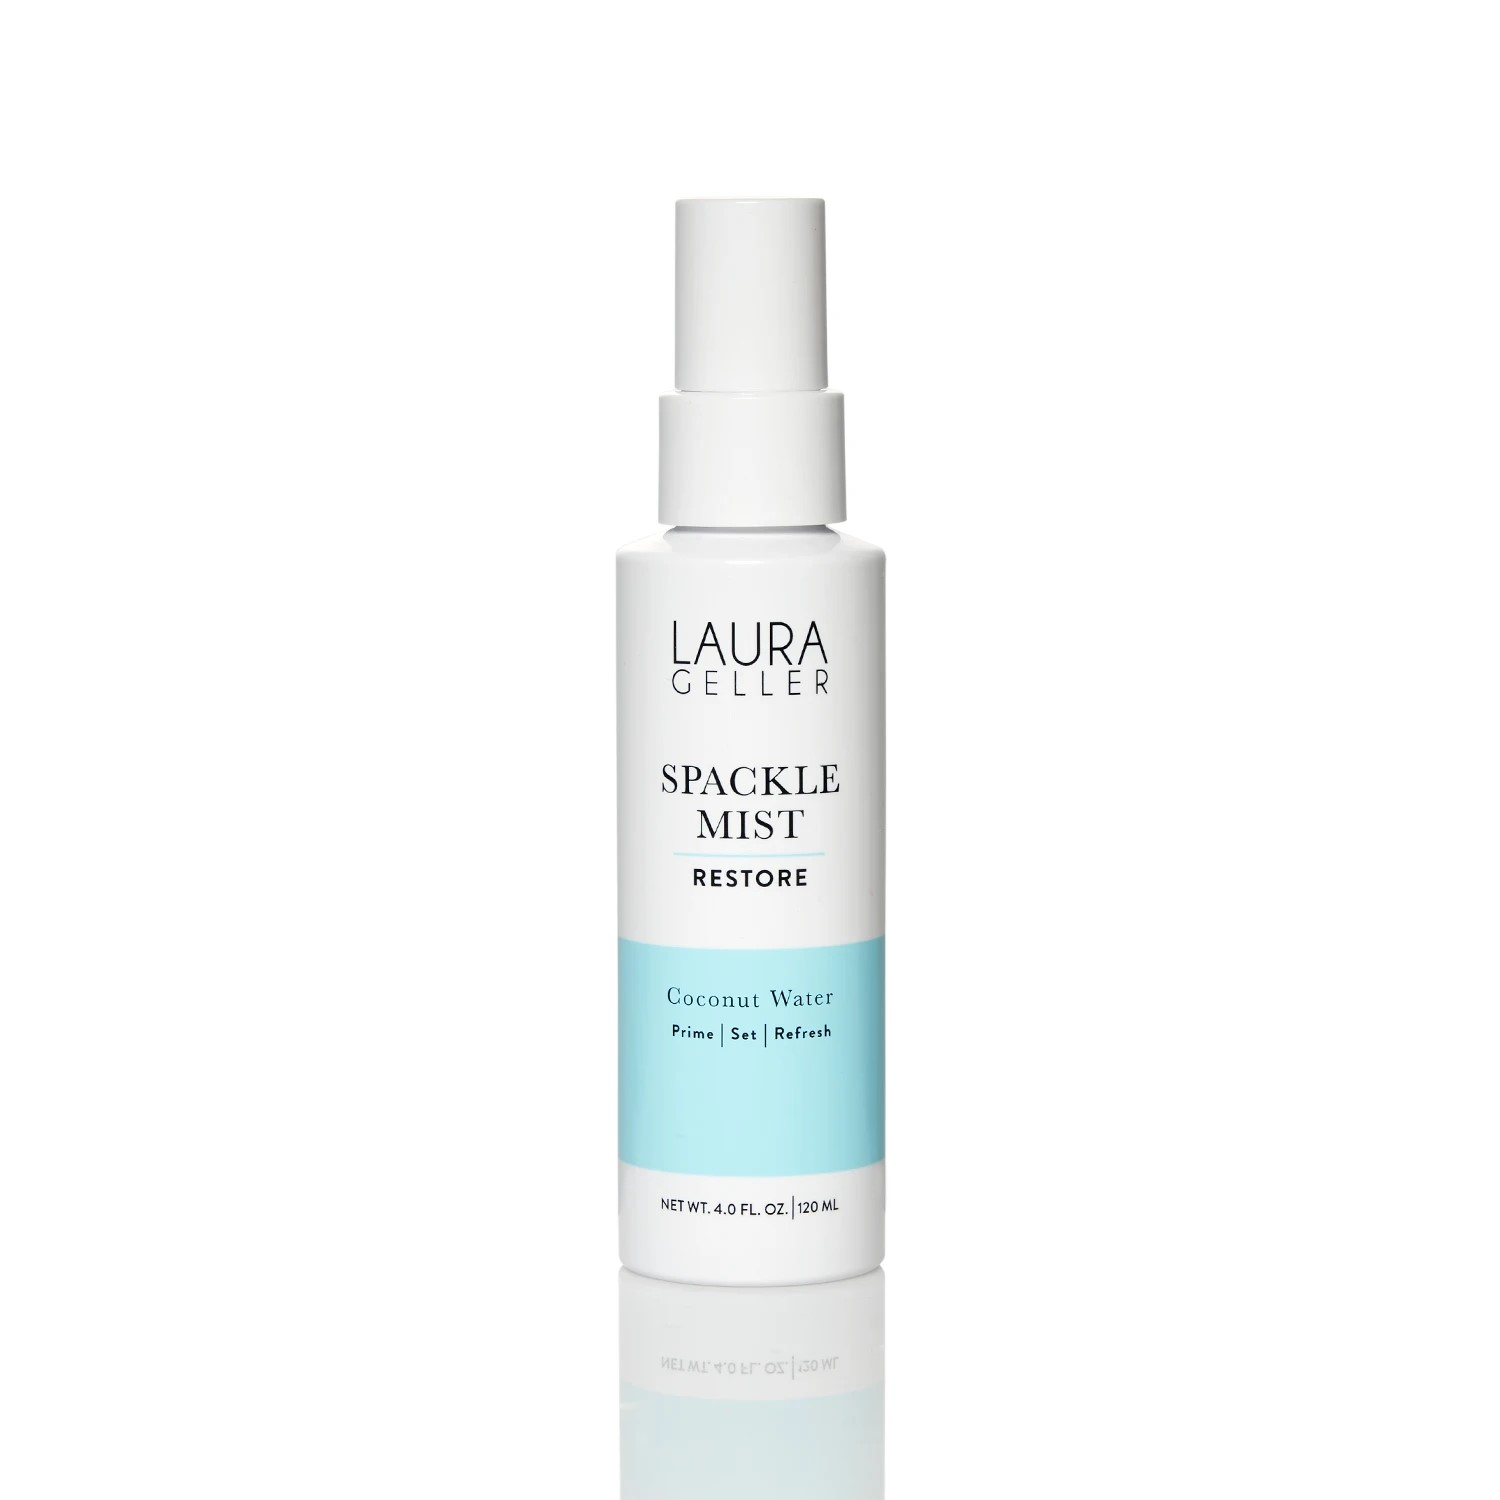 Laura Geller - Spackle Mist Restore